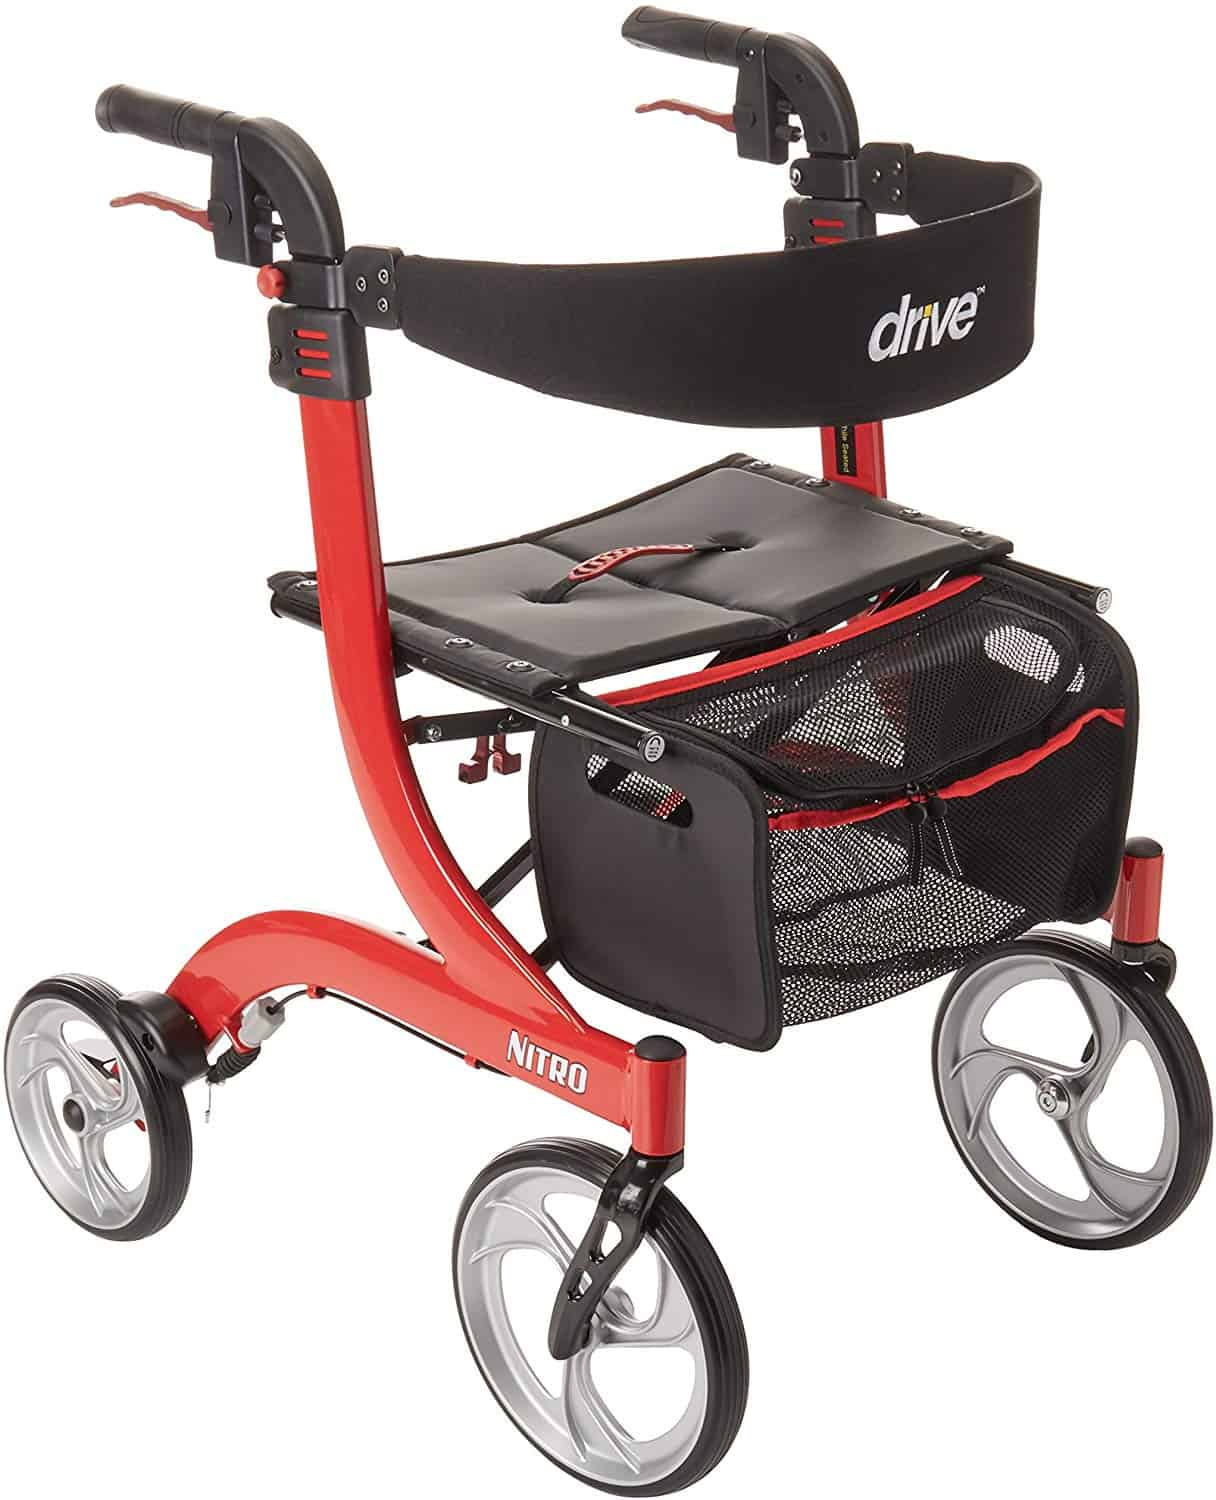 https://solidguides.com/wp-content/uploads/2019/09/Drive-Medical-Nitro-Euro-Style-Red-Rollator-Walker-RTL10266.jpg